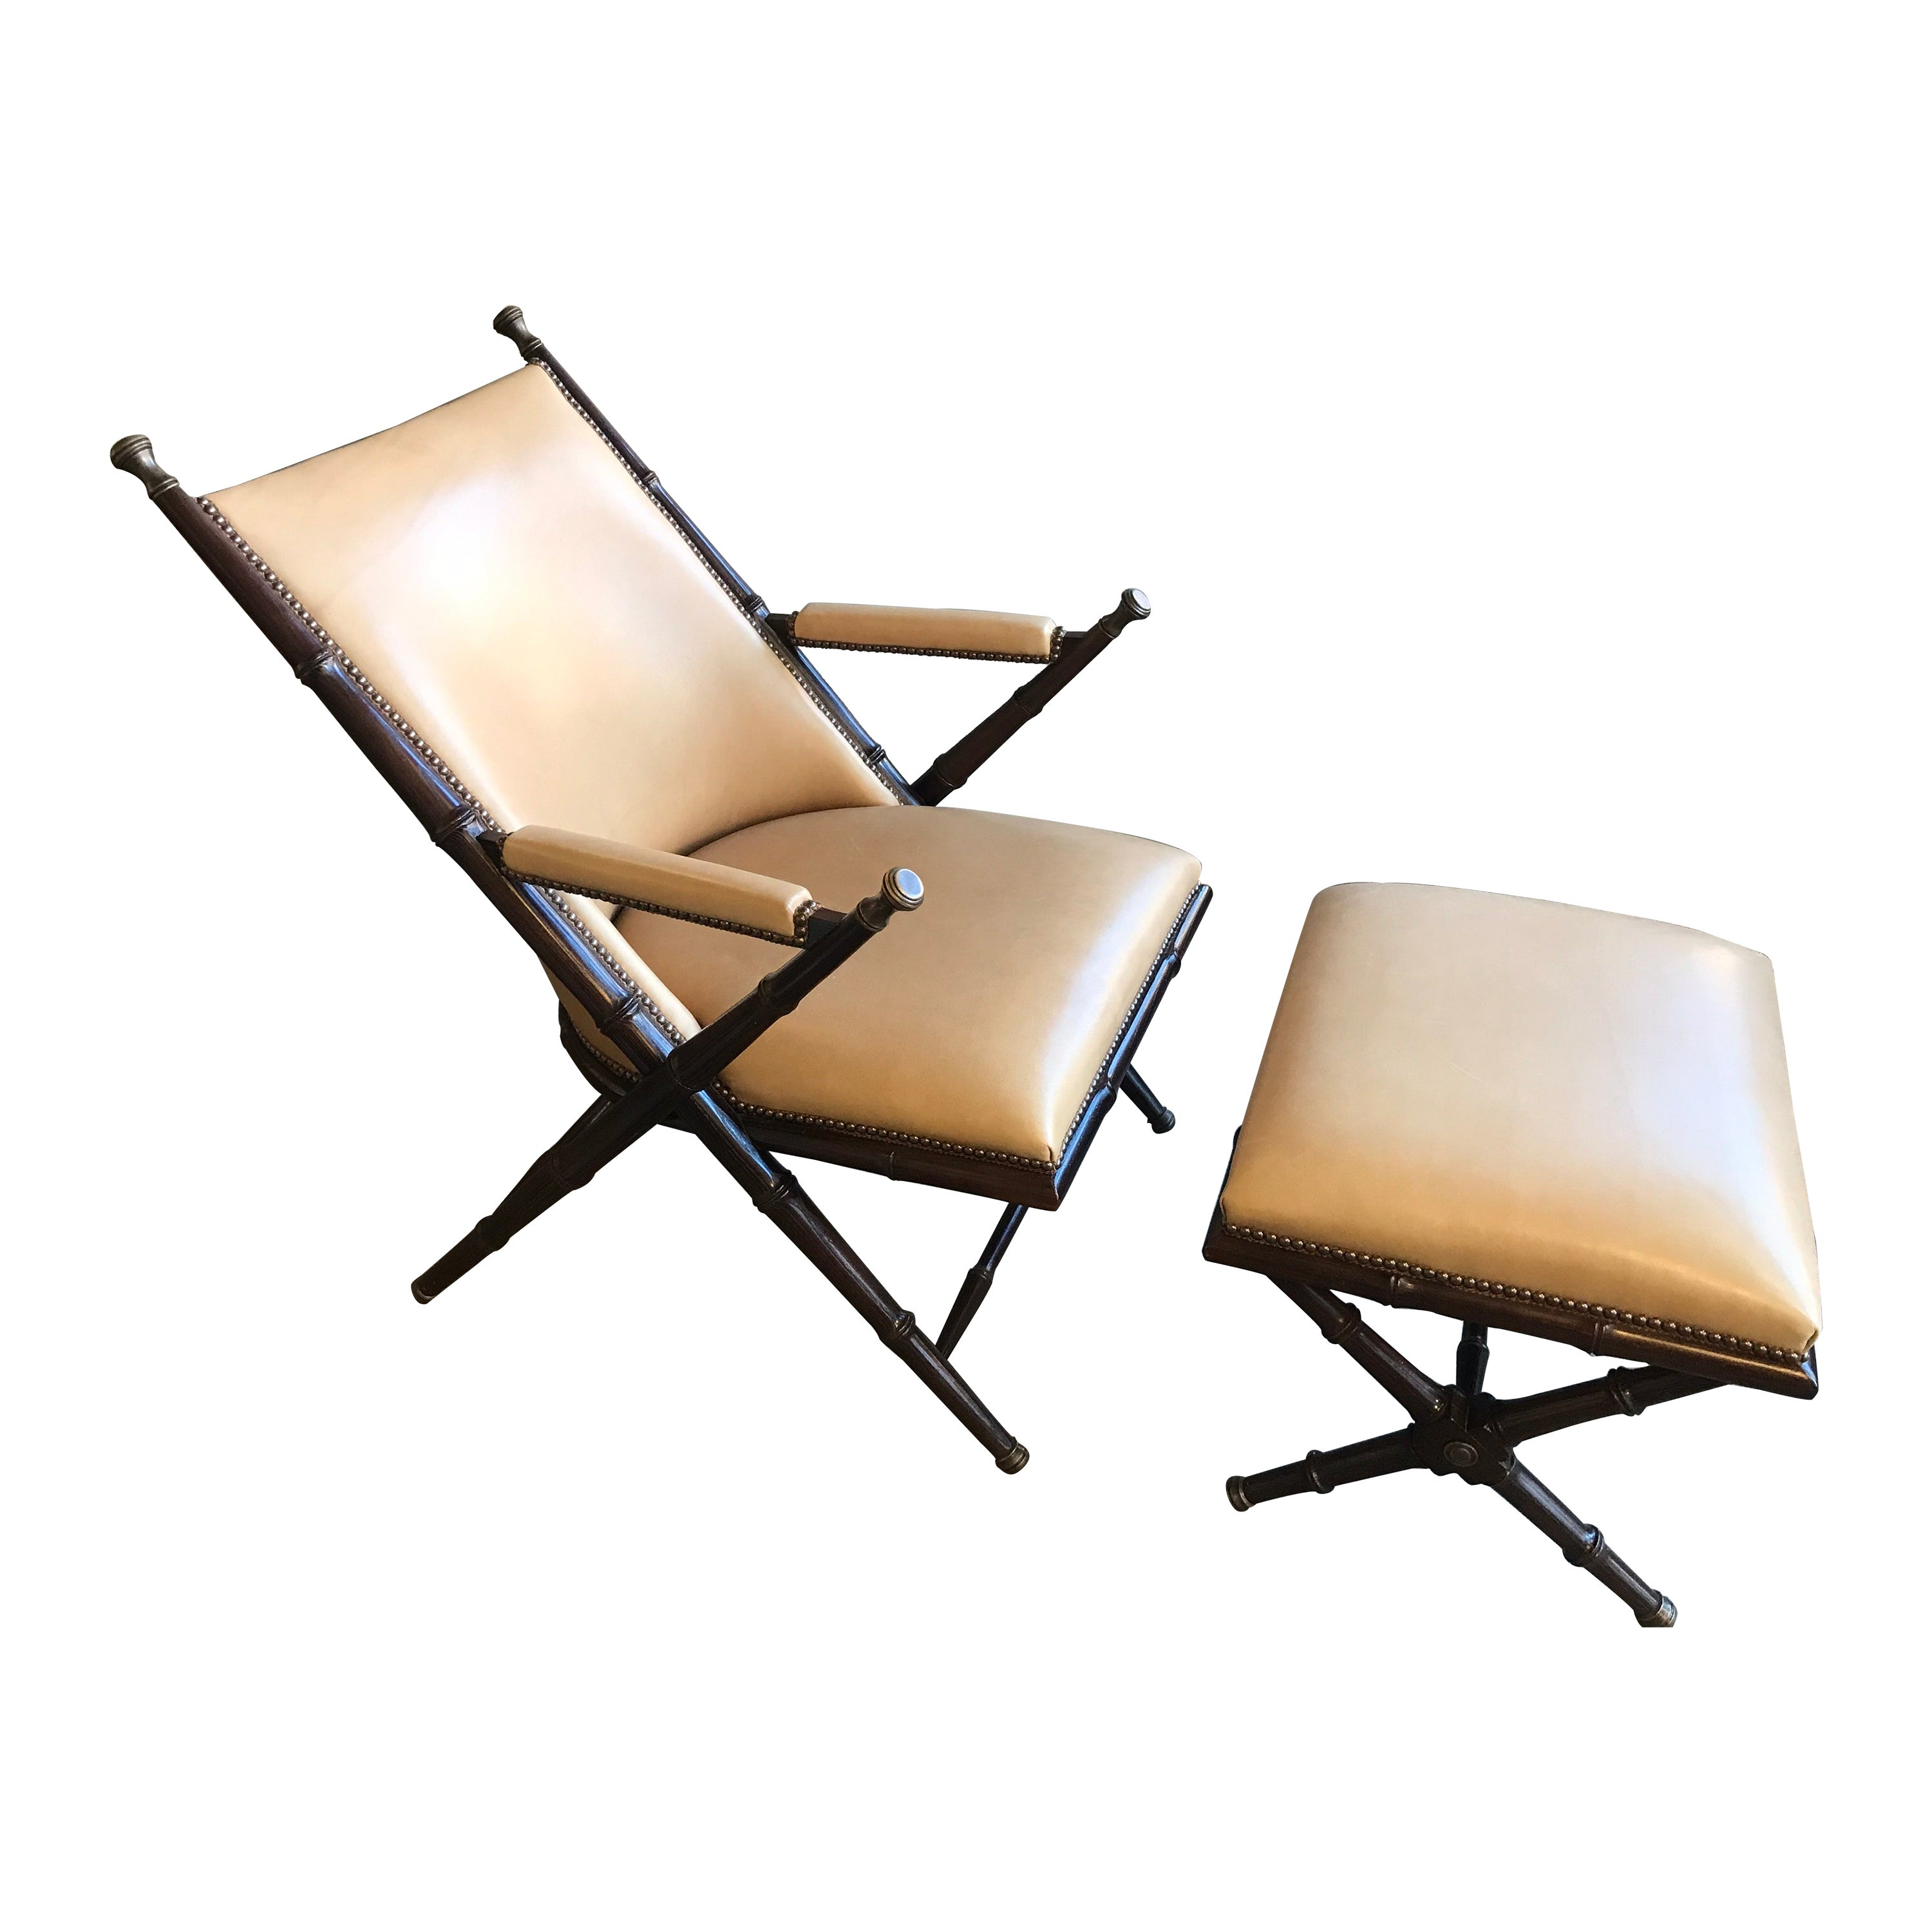 Bamboo, Brass and Leather Lounge Chair and Ottoman by Hickory Chair Co.